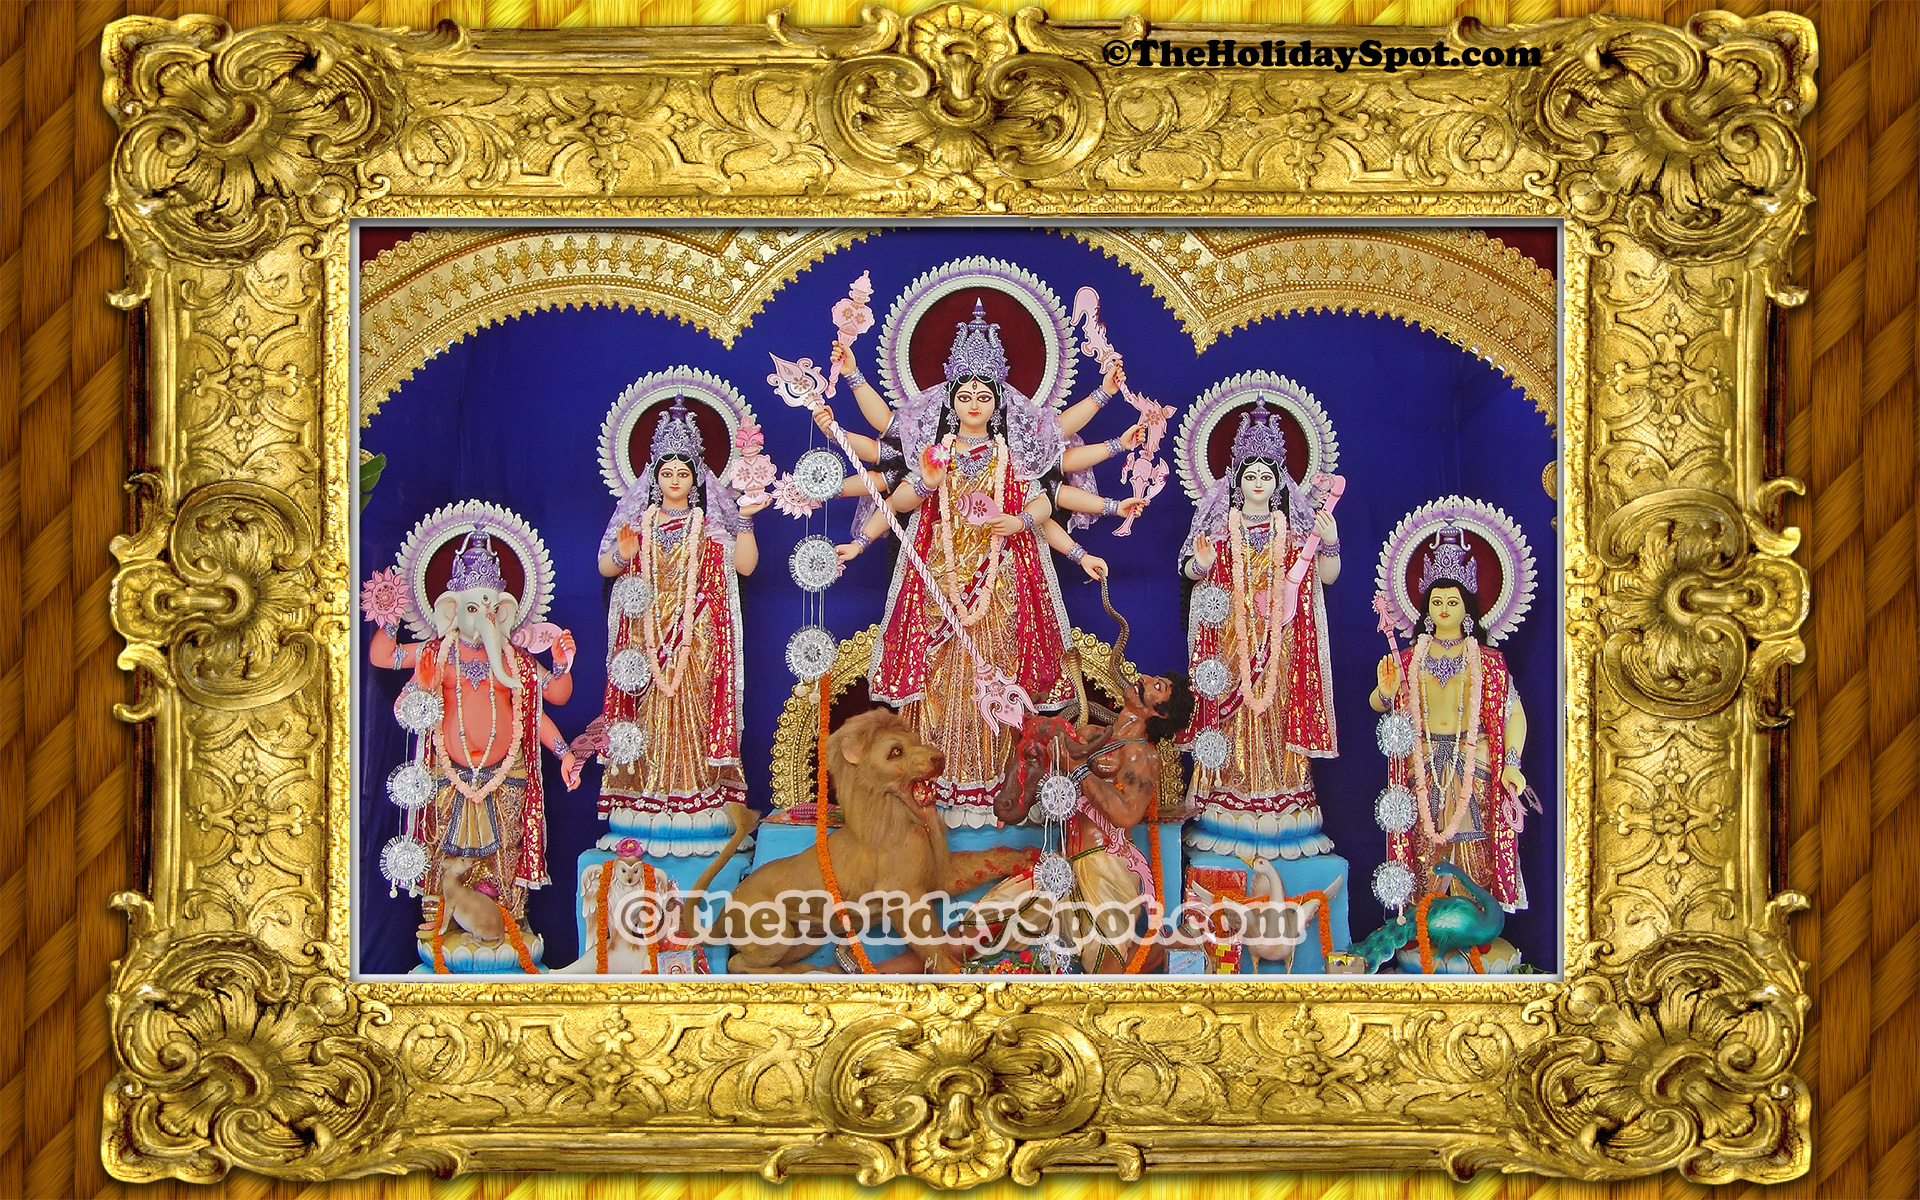 Durga puja wallpapers its free download now durga puja images a wonderful high definition desktop illustration of durga puja altavistaventures Choice Image